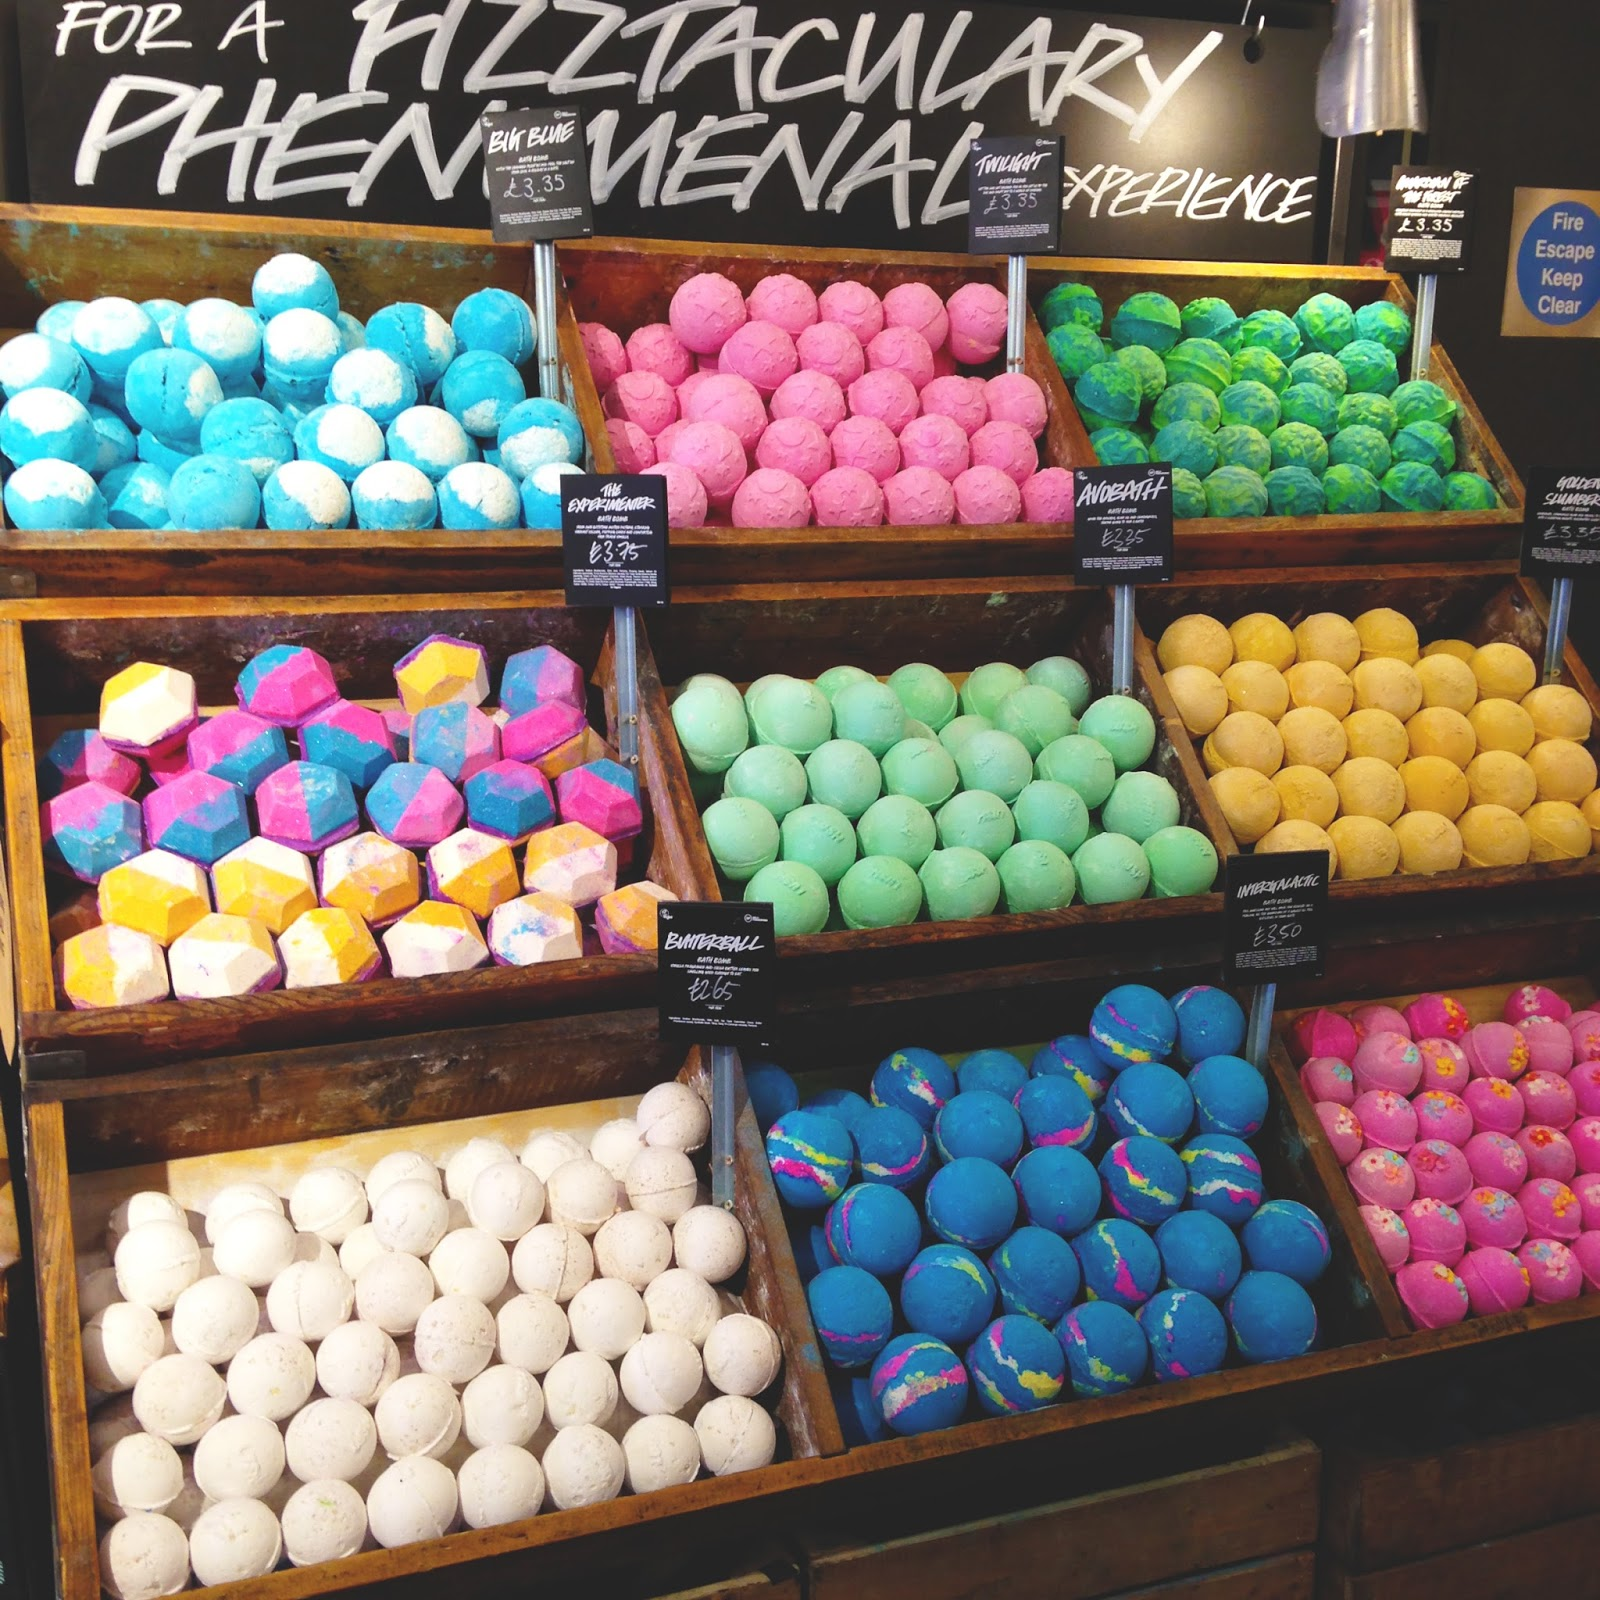 lush bath bombs at their oxford street store